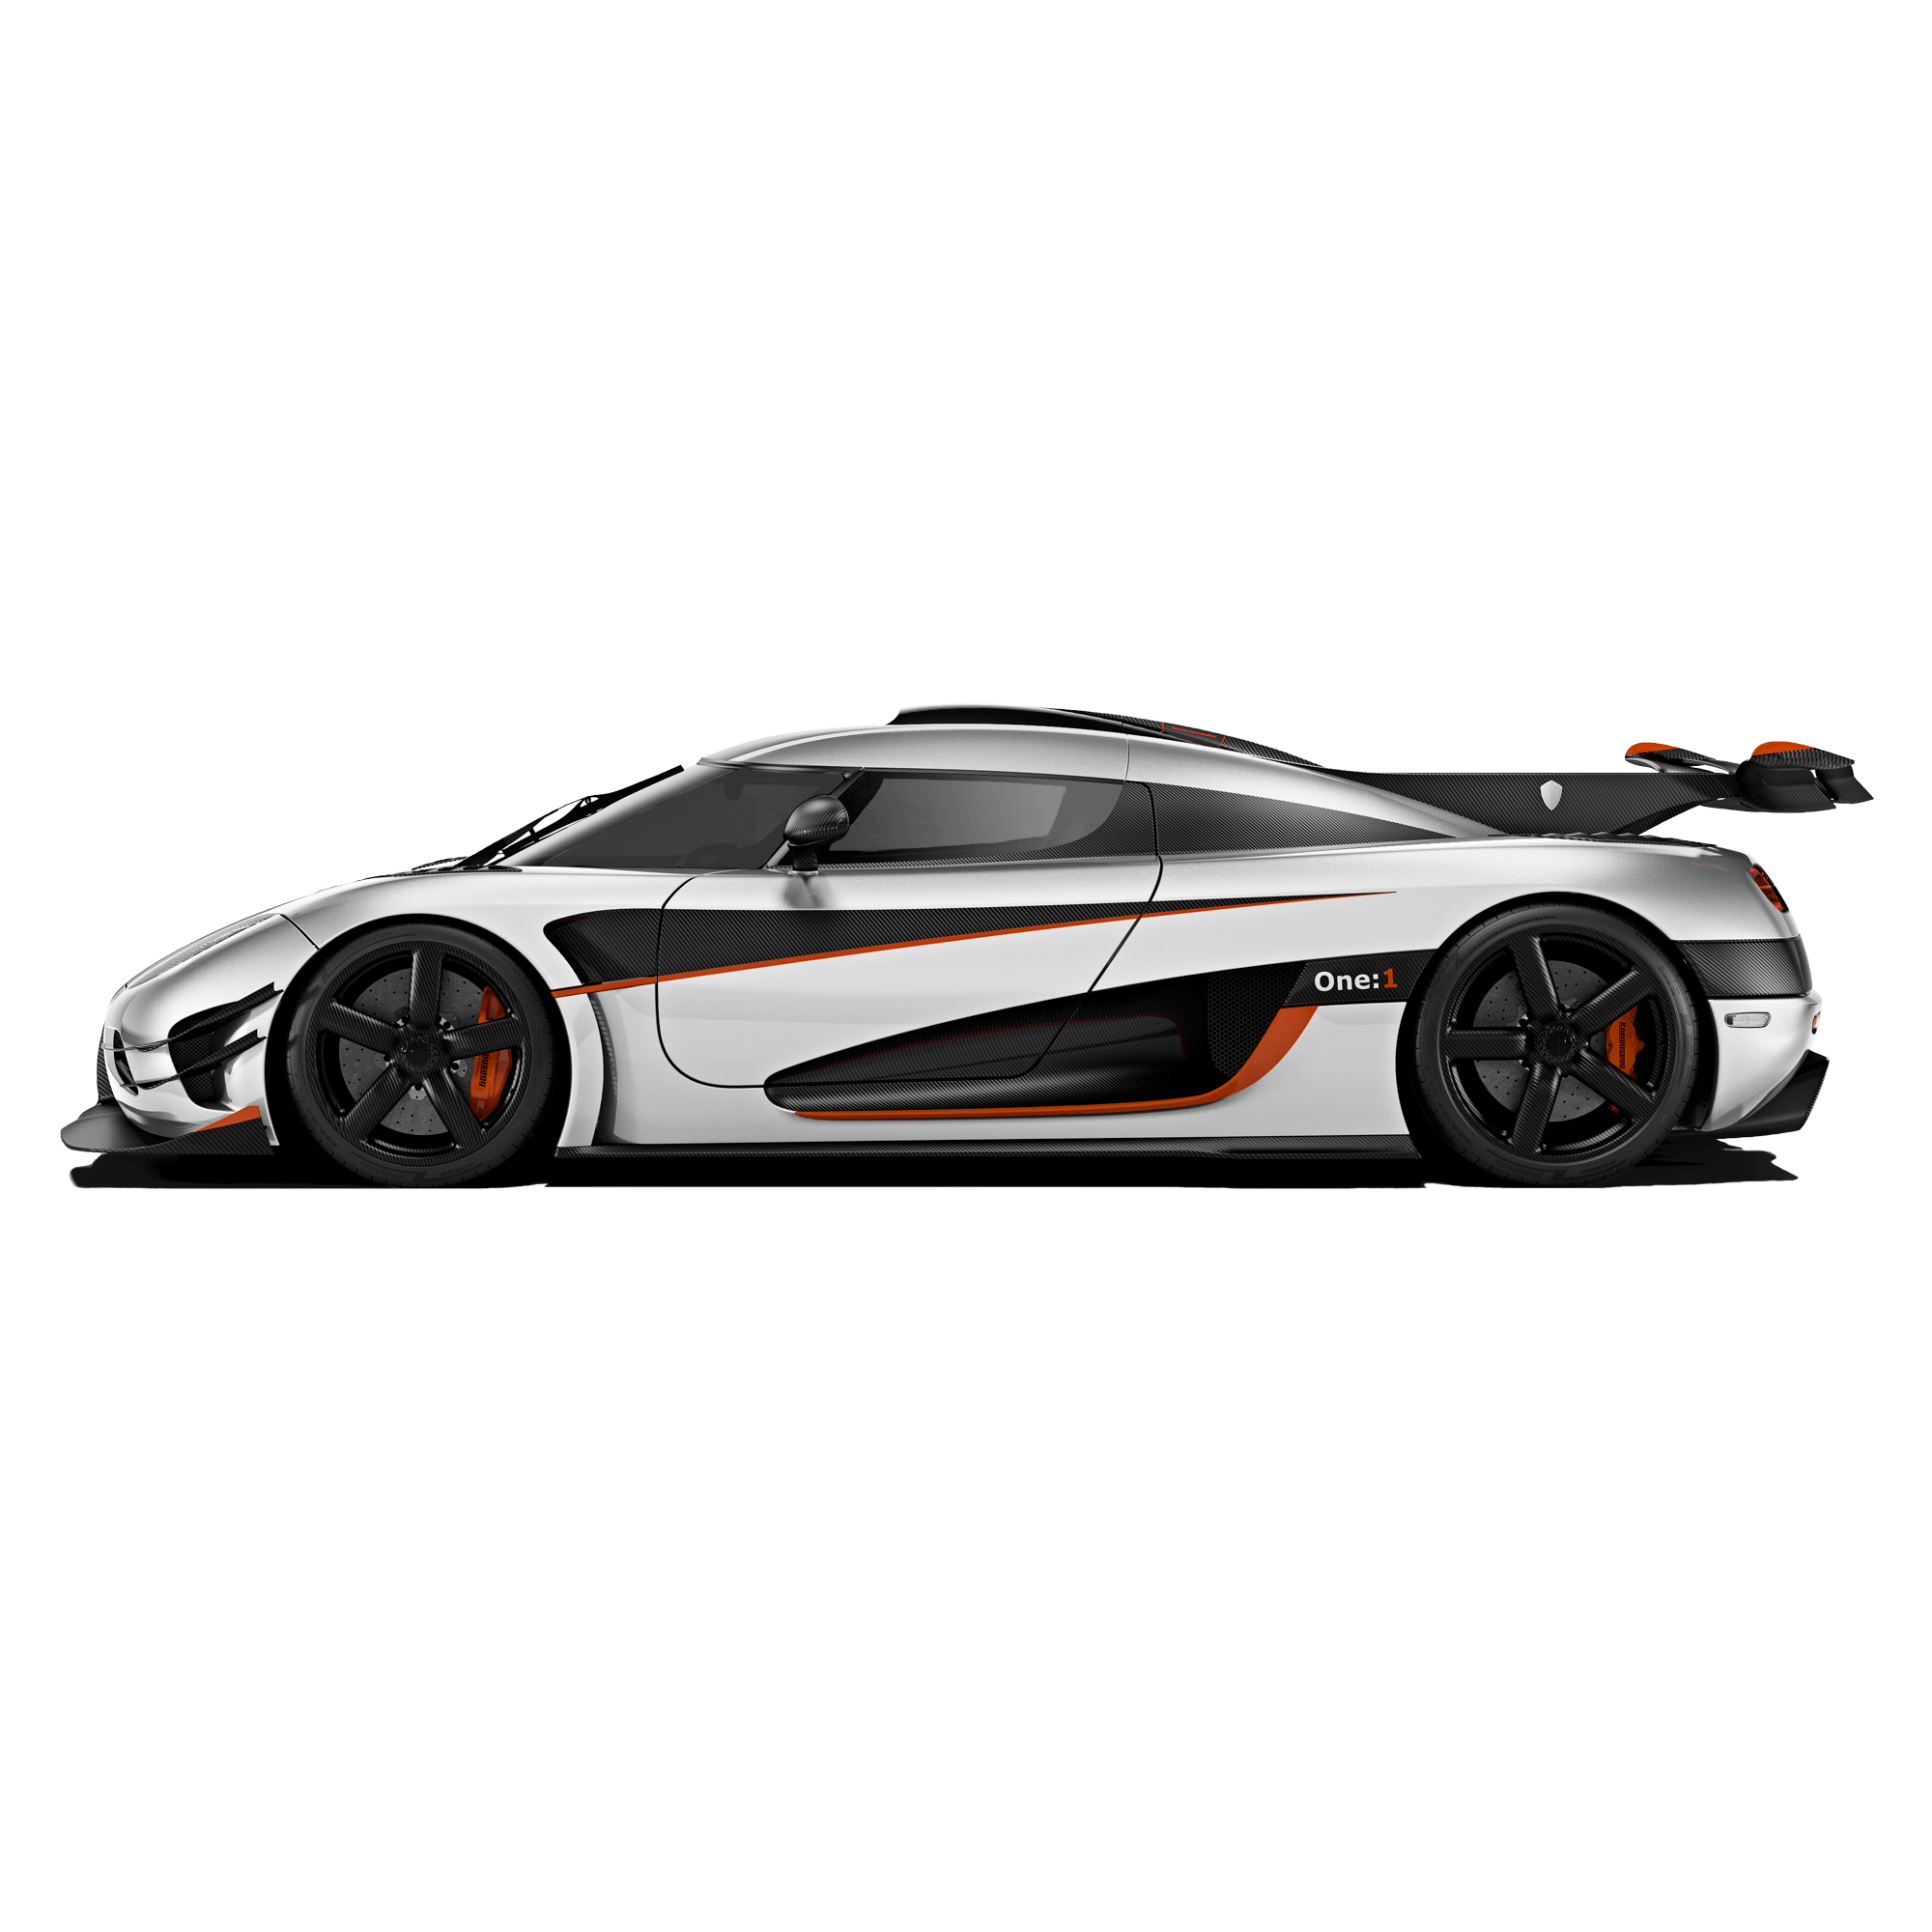 Koenigsegg One:1 Features & Specifications